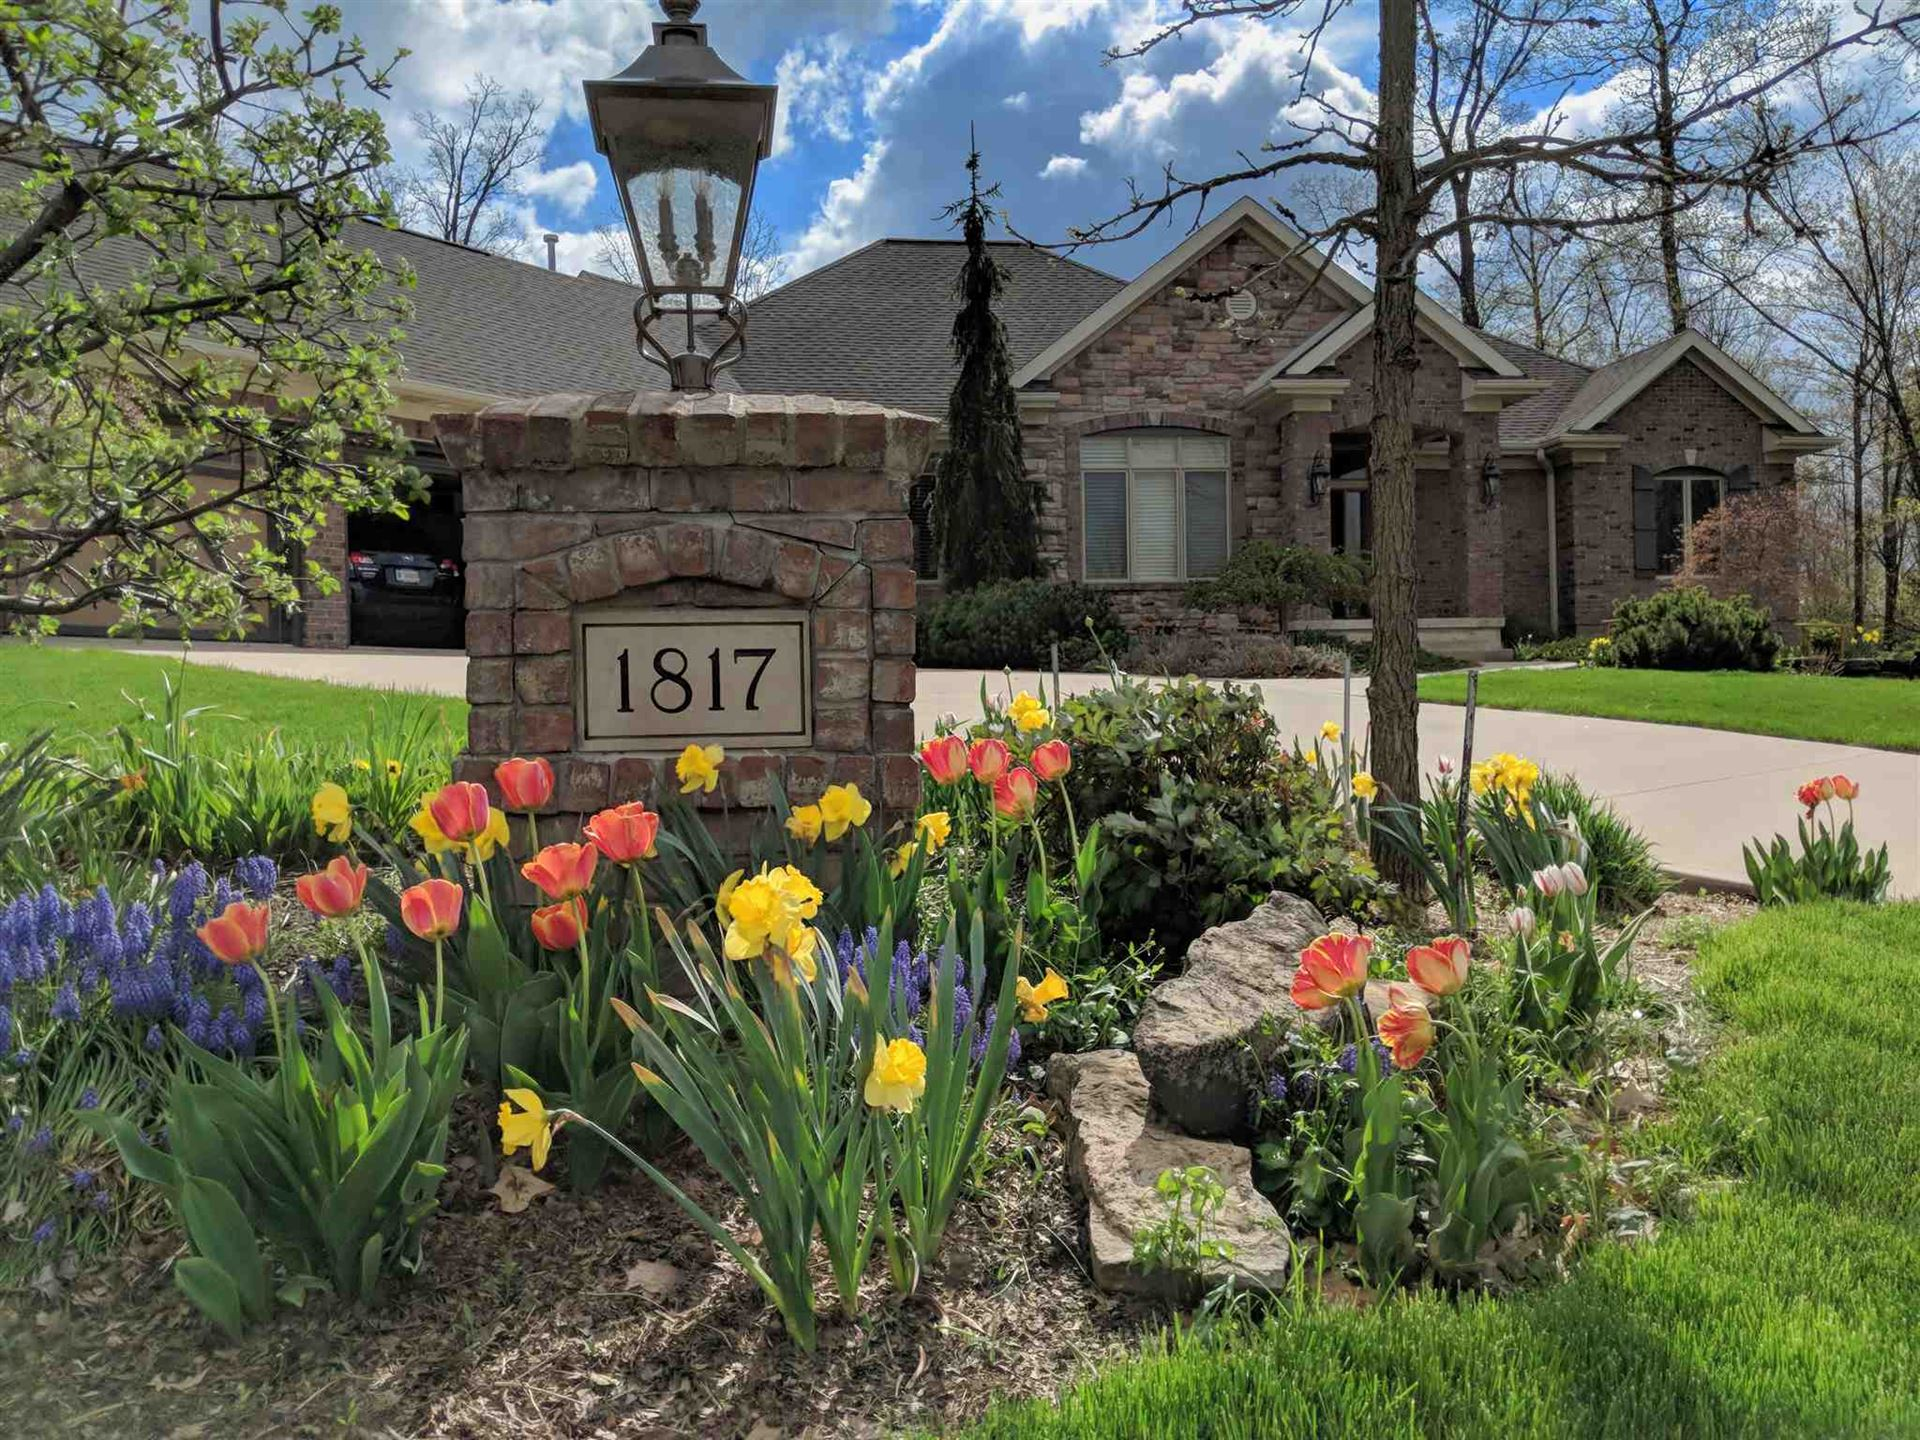 1817 Glenlivet Court, Fort Wayne, IN 46804 - #: 202013582